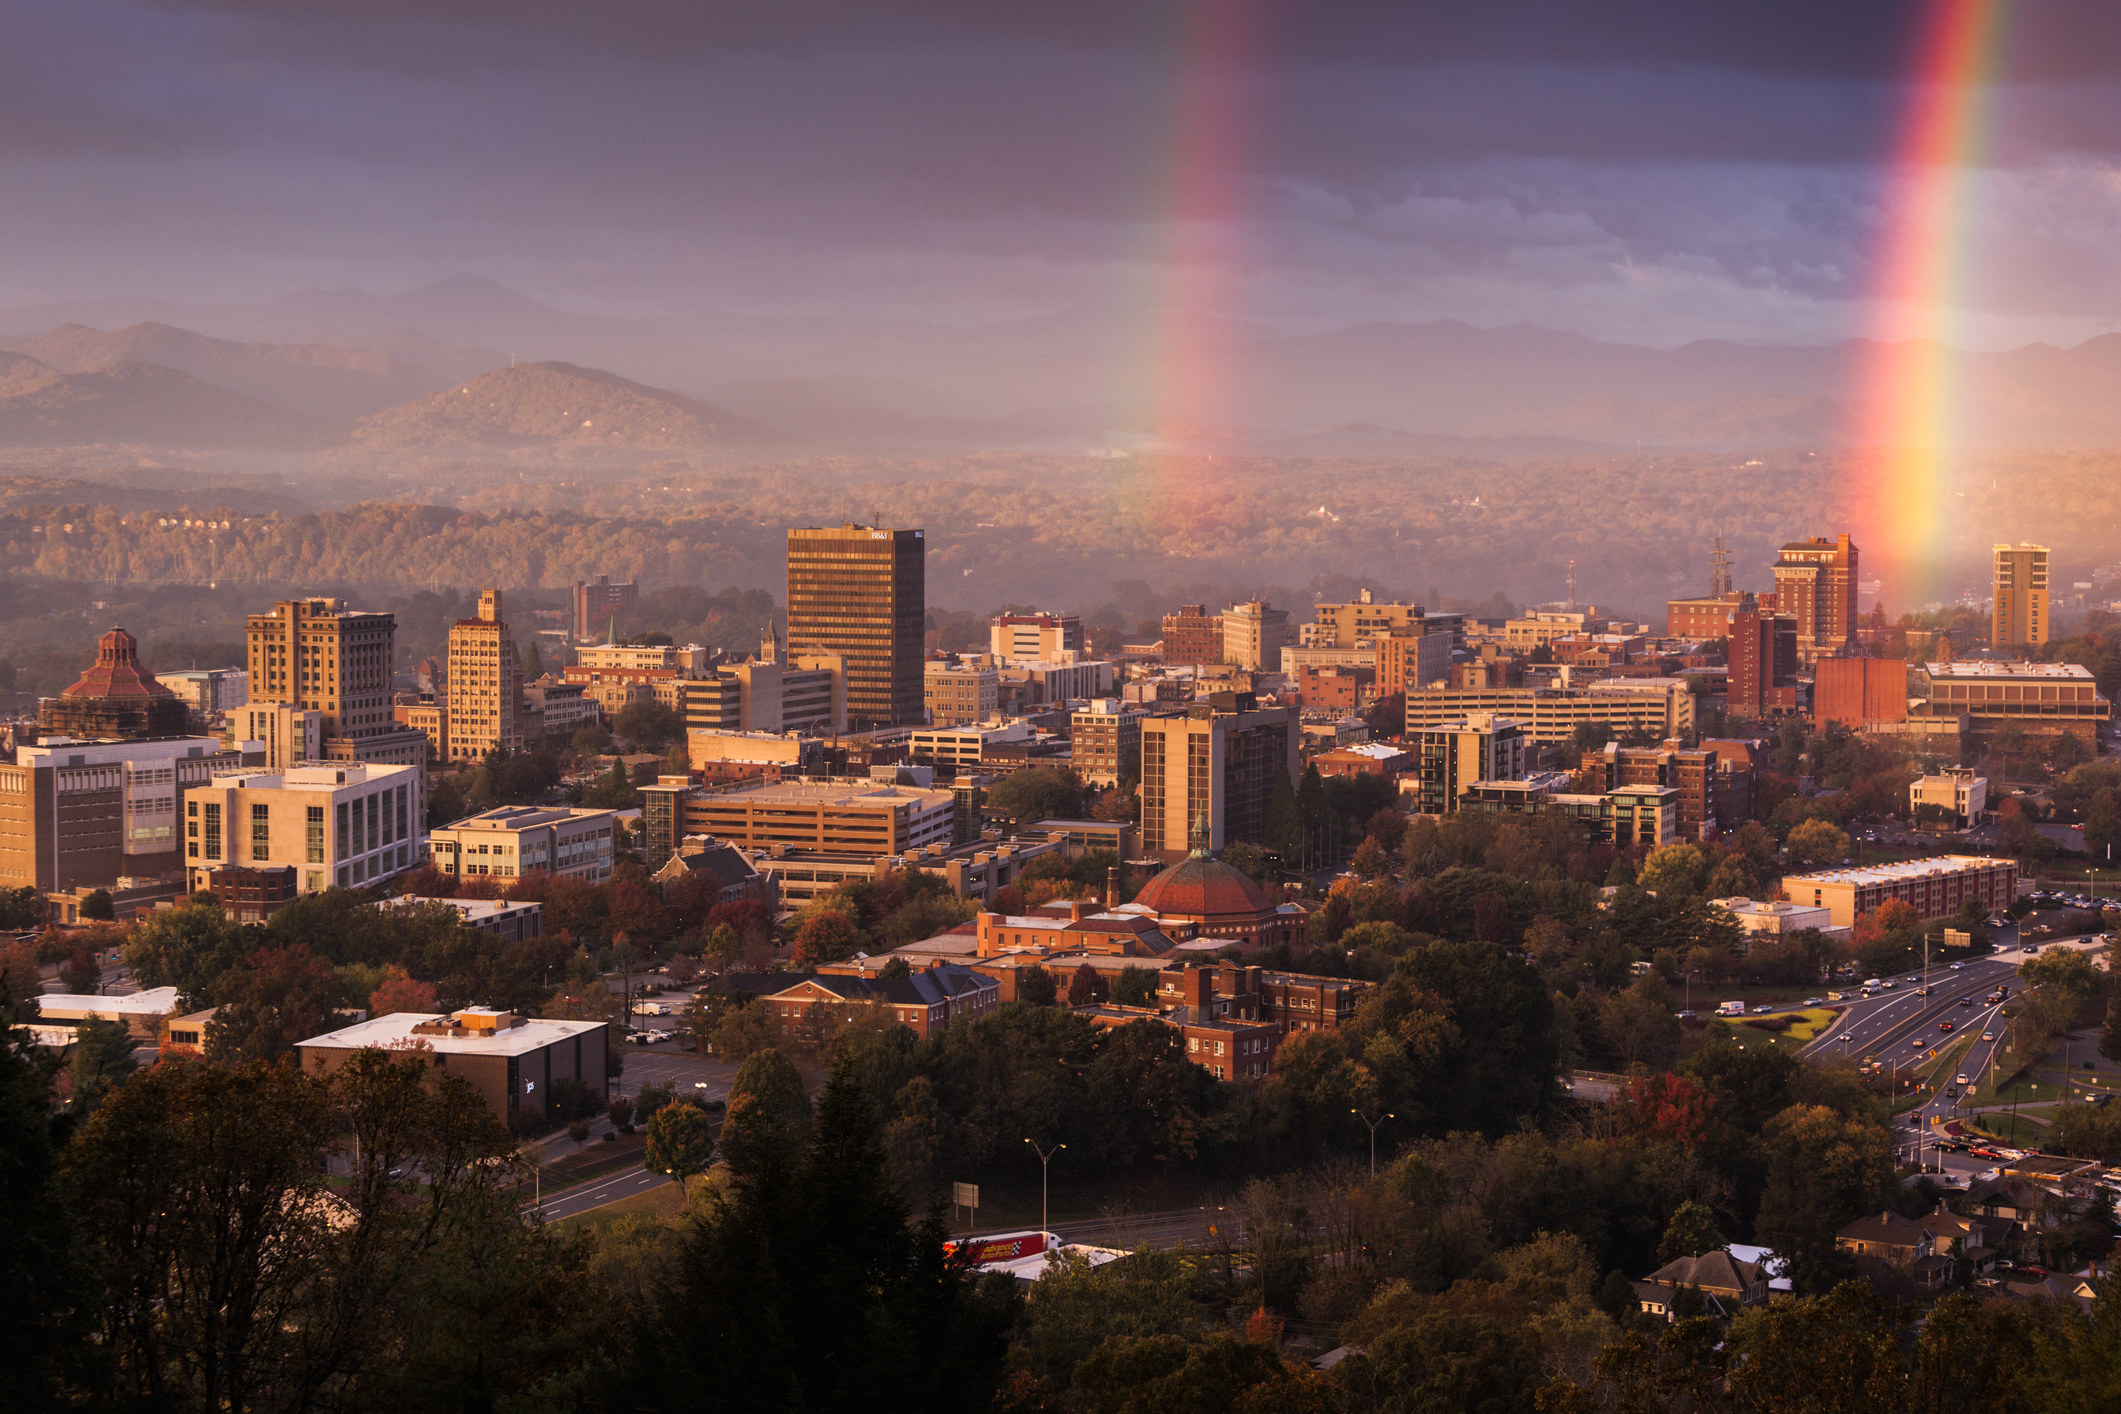 The Asheville skyline with mountains in the background and rainbows.